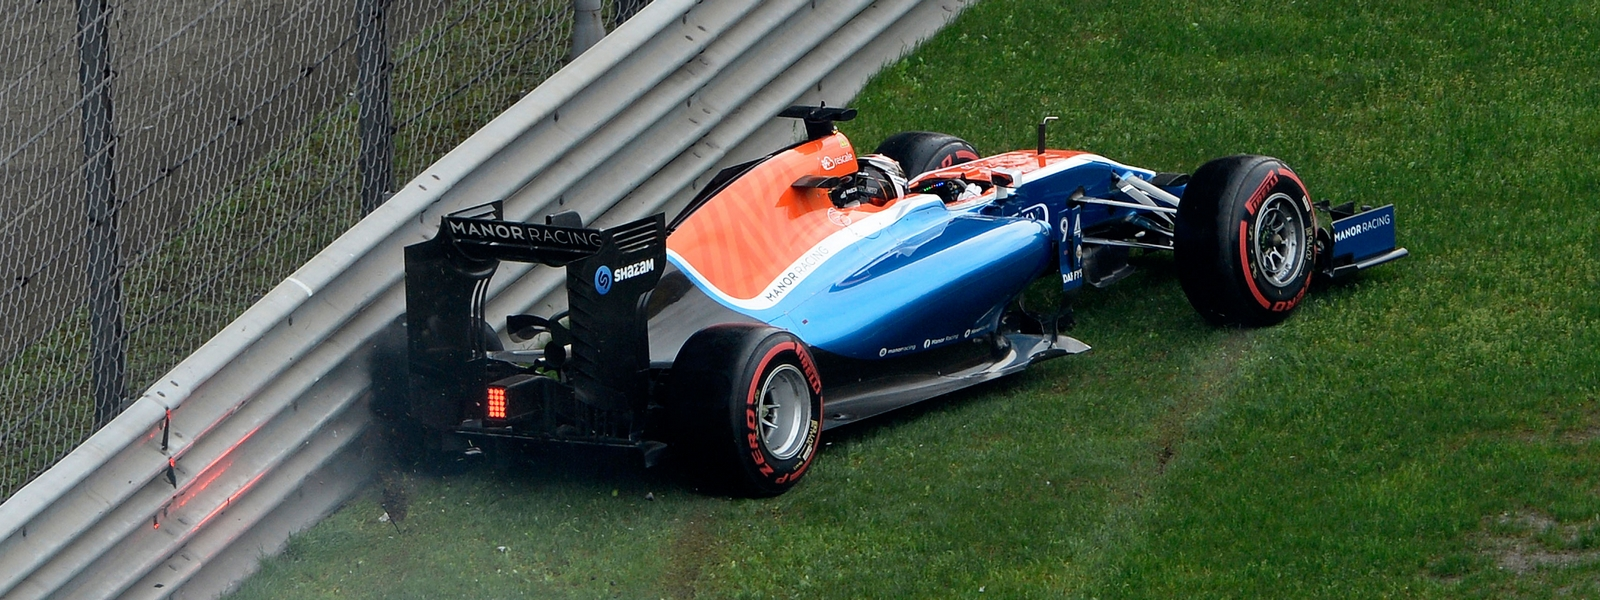 Motorsports: FIA Formula One World Championship 2016, Grand Prix of China, #94 Pascal Wehrlein (GER, Manor Racing MRT),